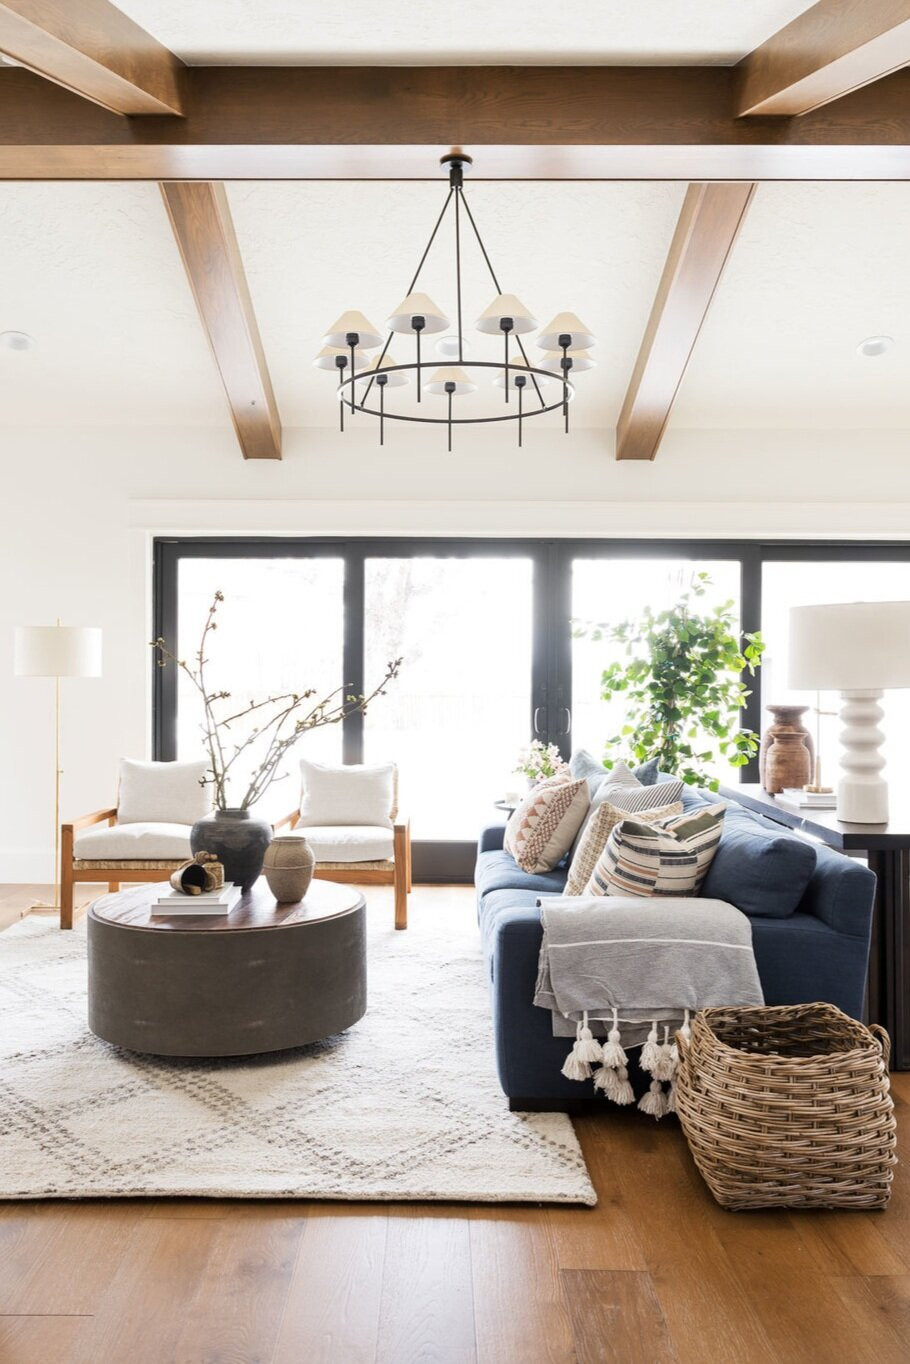 vaulted ceiling with wood details black framed accordion patio doors natural light wool area rug oversized blue sofa with throw pillows and throw basket on floor white table lamp floor lamp with two sitting chairs concrete grey ottoman oversized chandelier